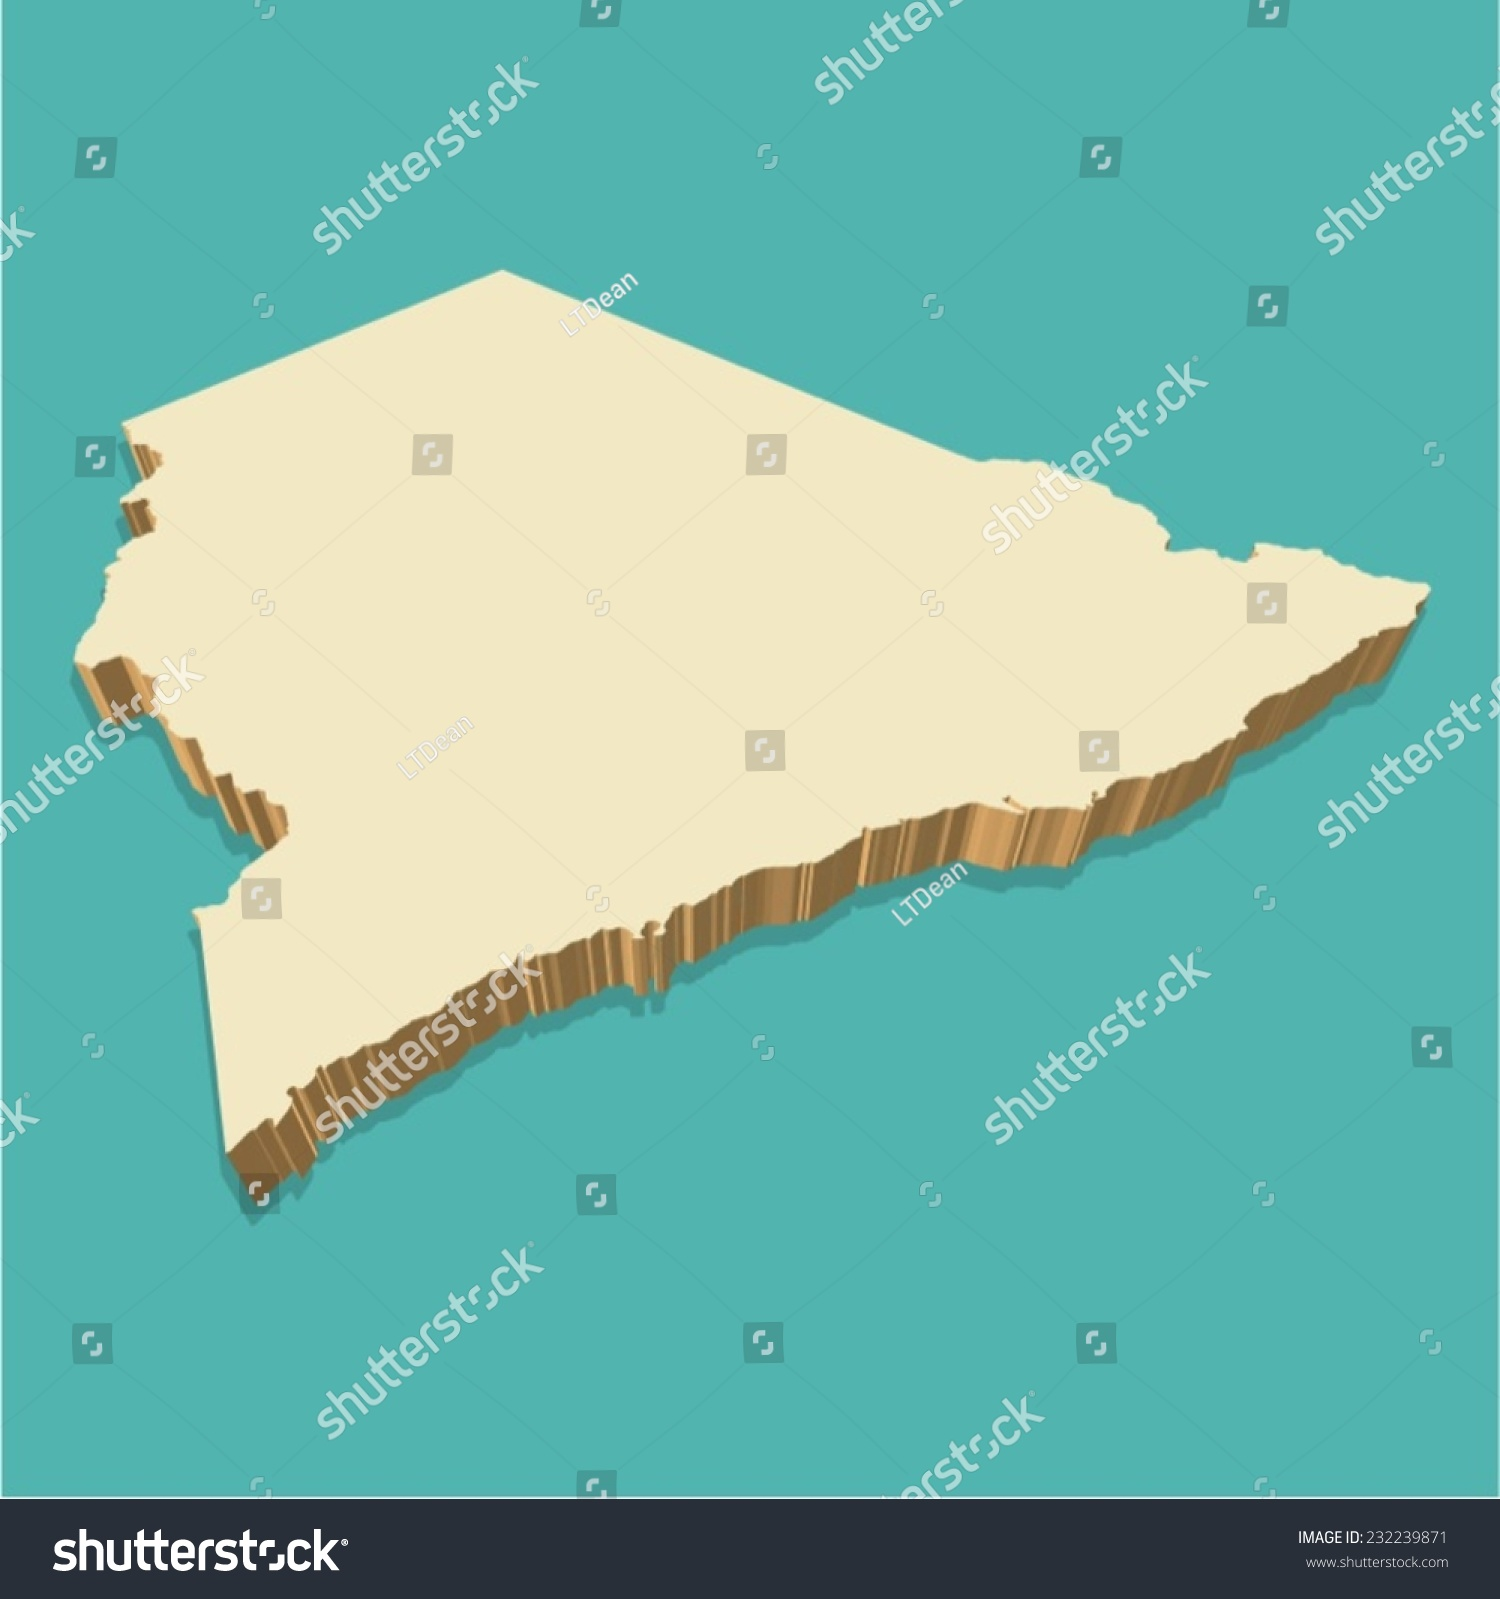 New South Wales Australia Vector Map Stock Vector - South wales australia map